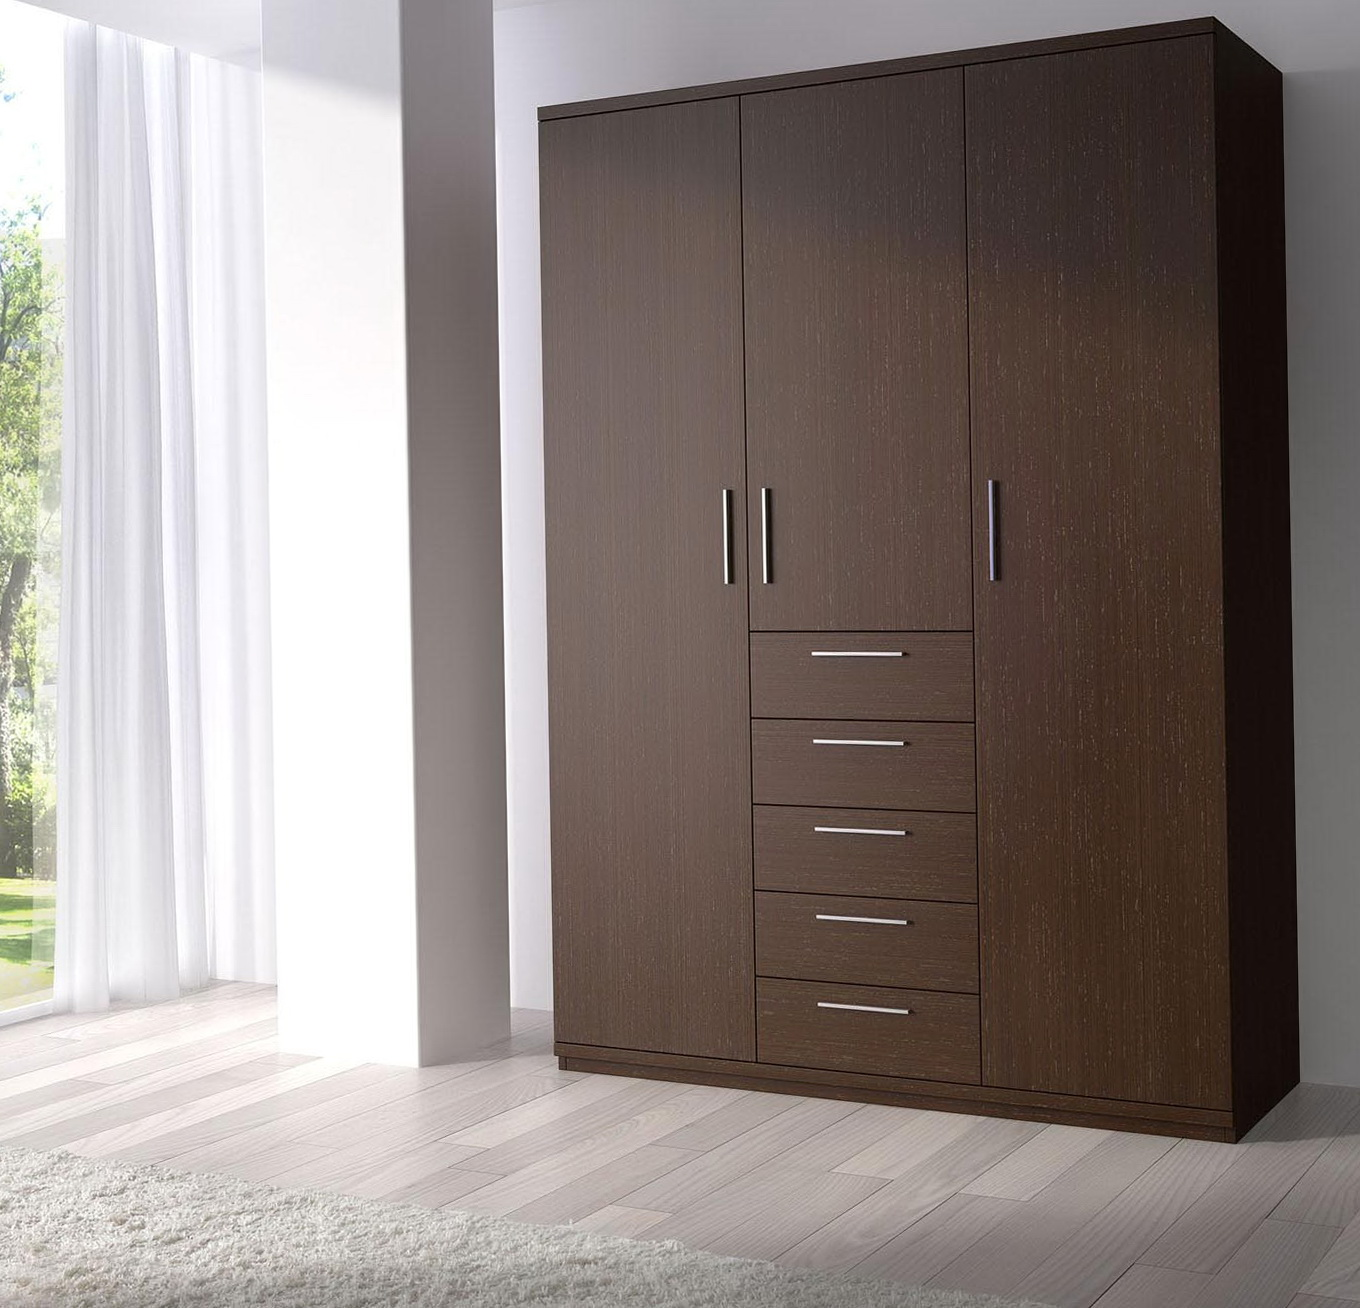 Ready Made Closets Home Depot Home Design Ideas